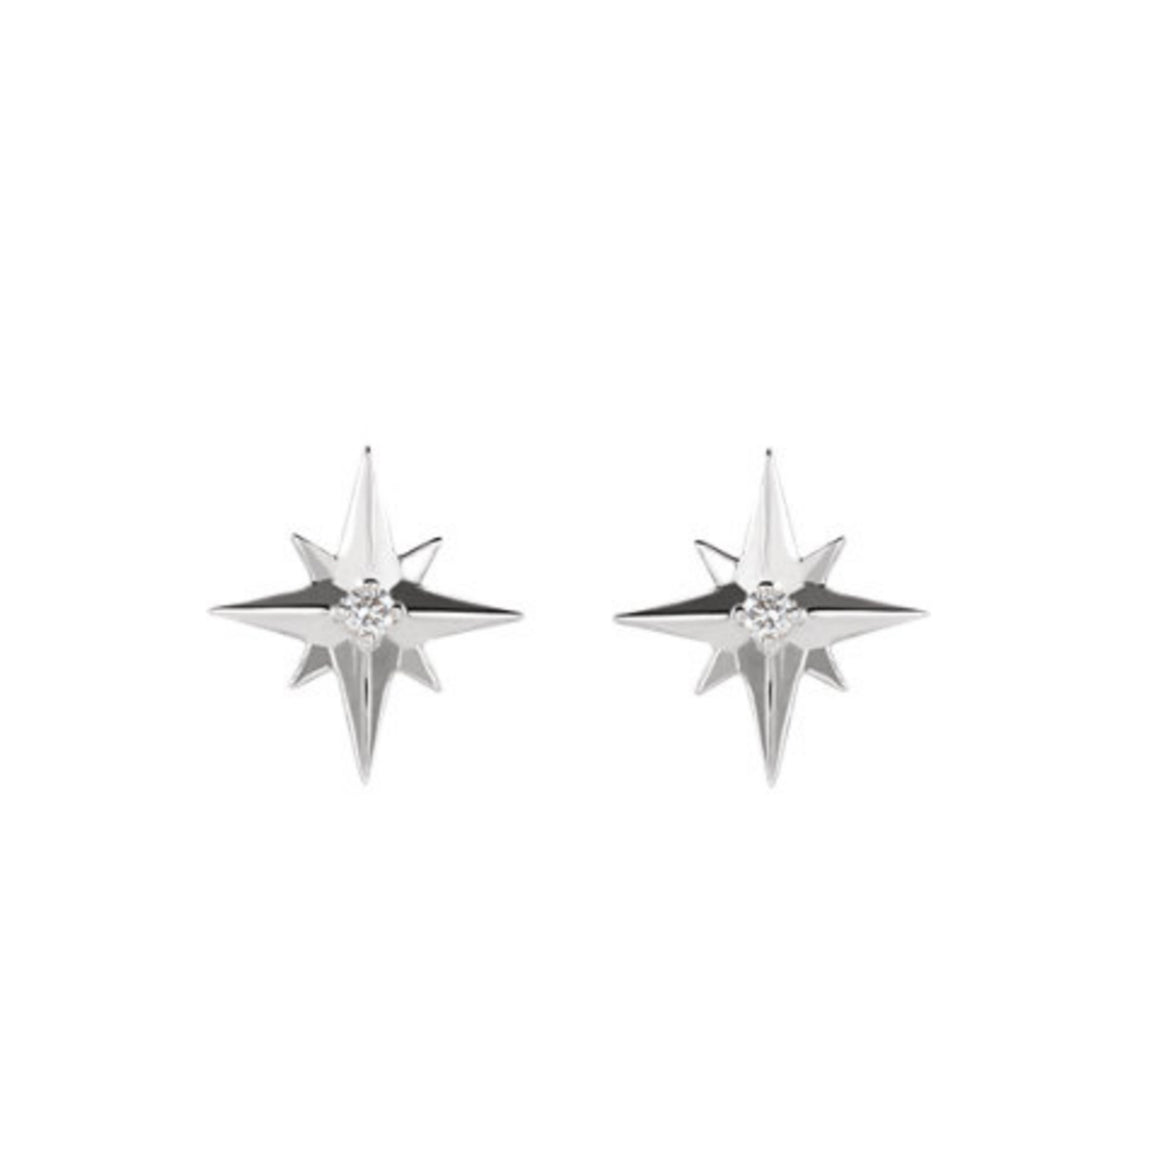 Diamond Starburst Stud Earrings in Gold, Platinum or Sterling Silver - Talisman Collection Fine Jewelers